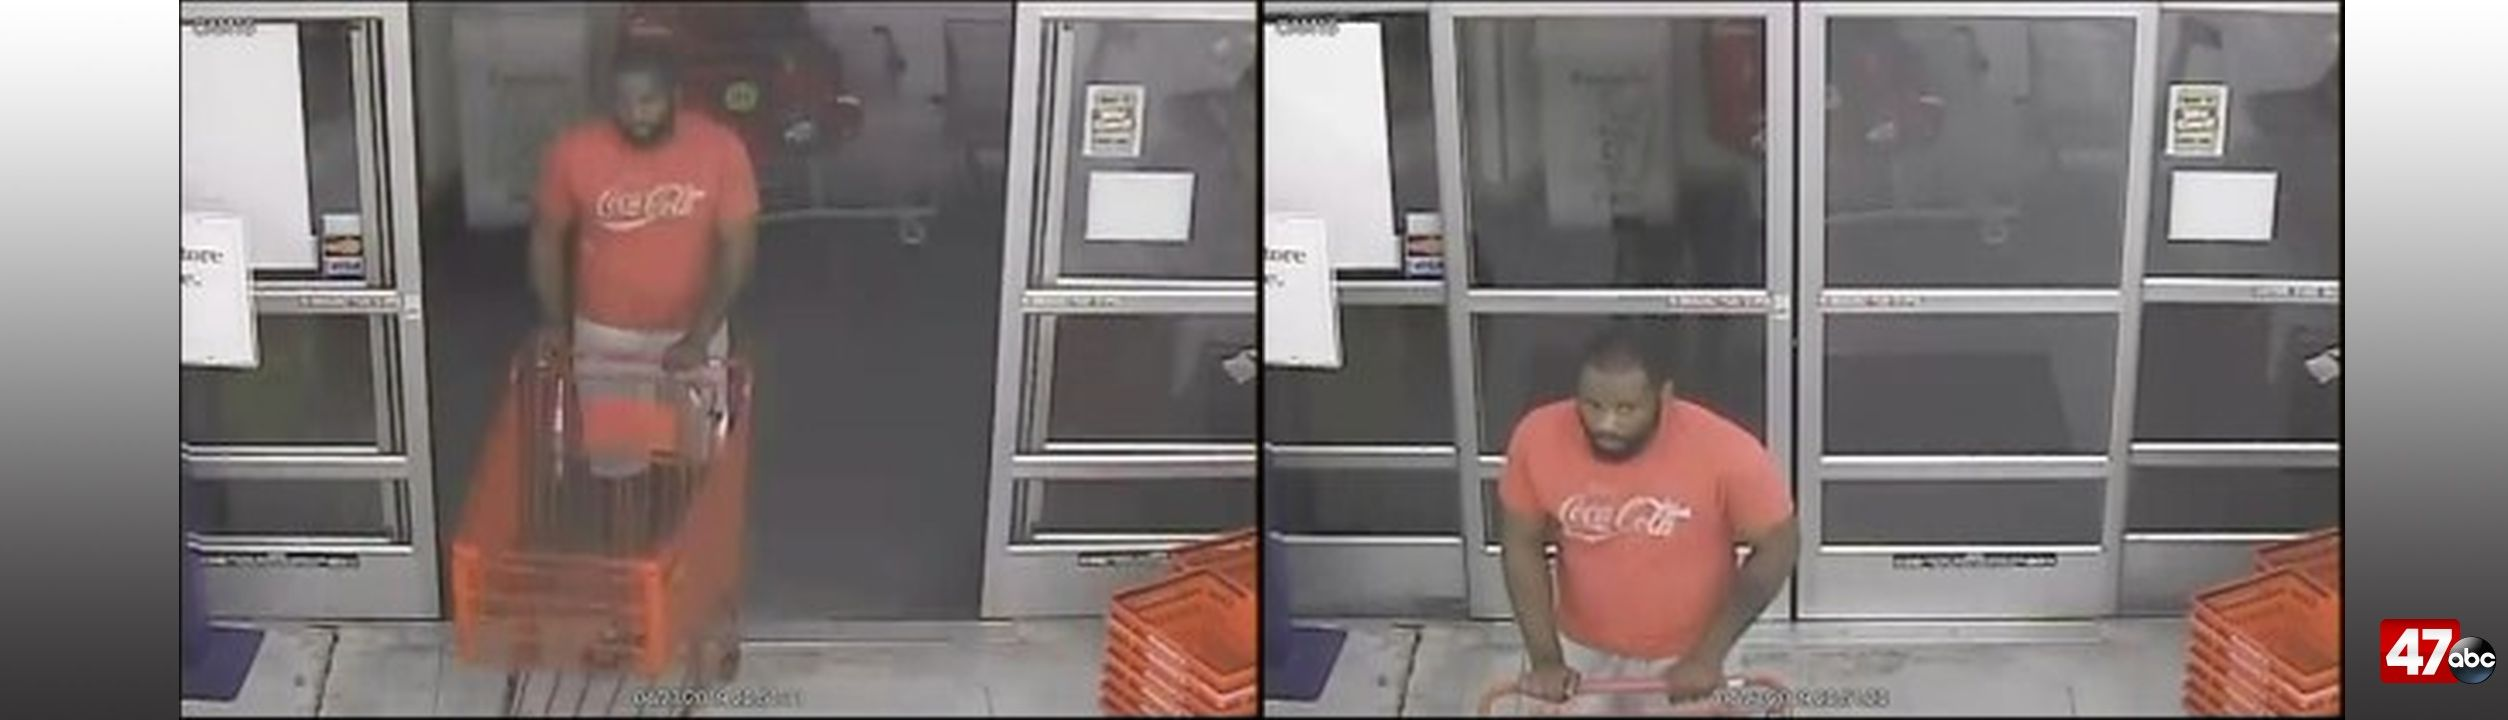 Milford Police asking for help identifying shoplifting